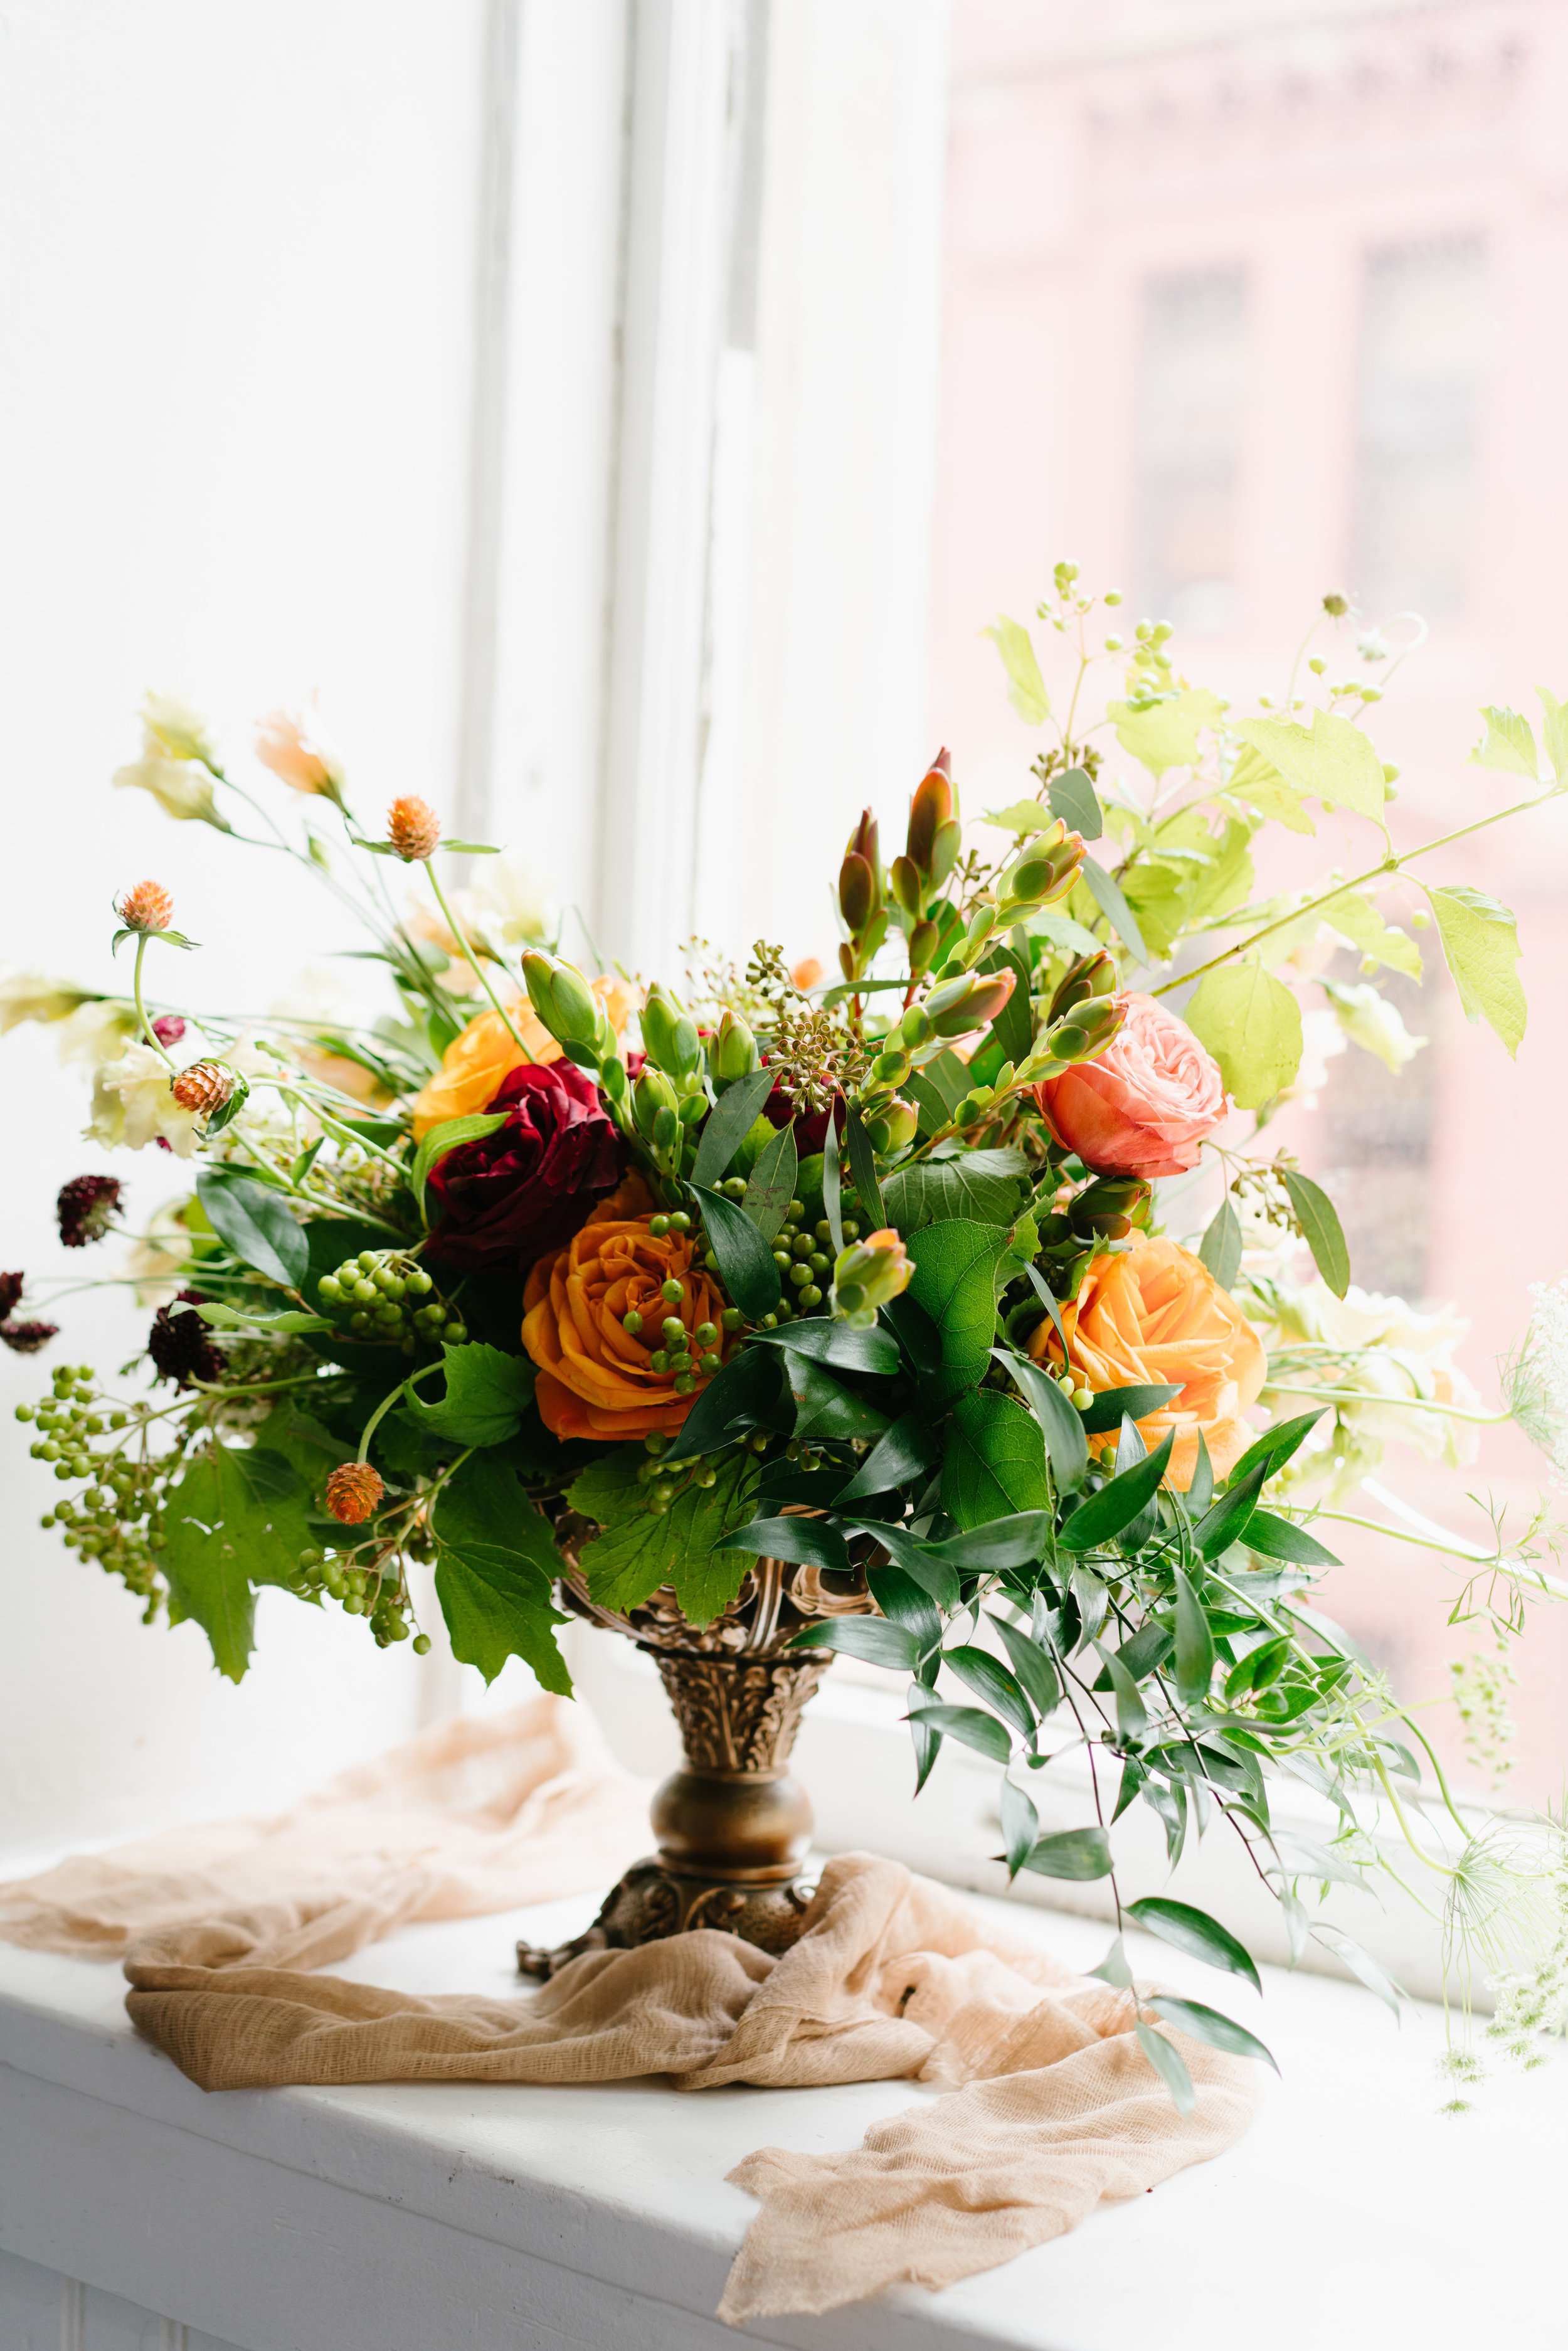 photo of wedding bouquet by los Angeles wedding photographer